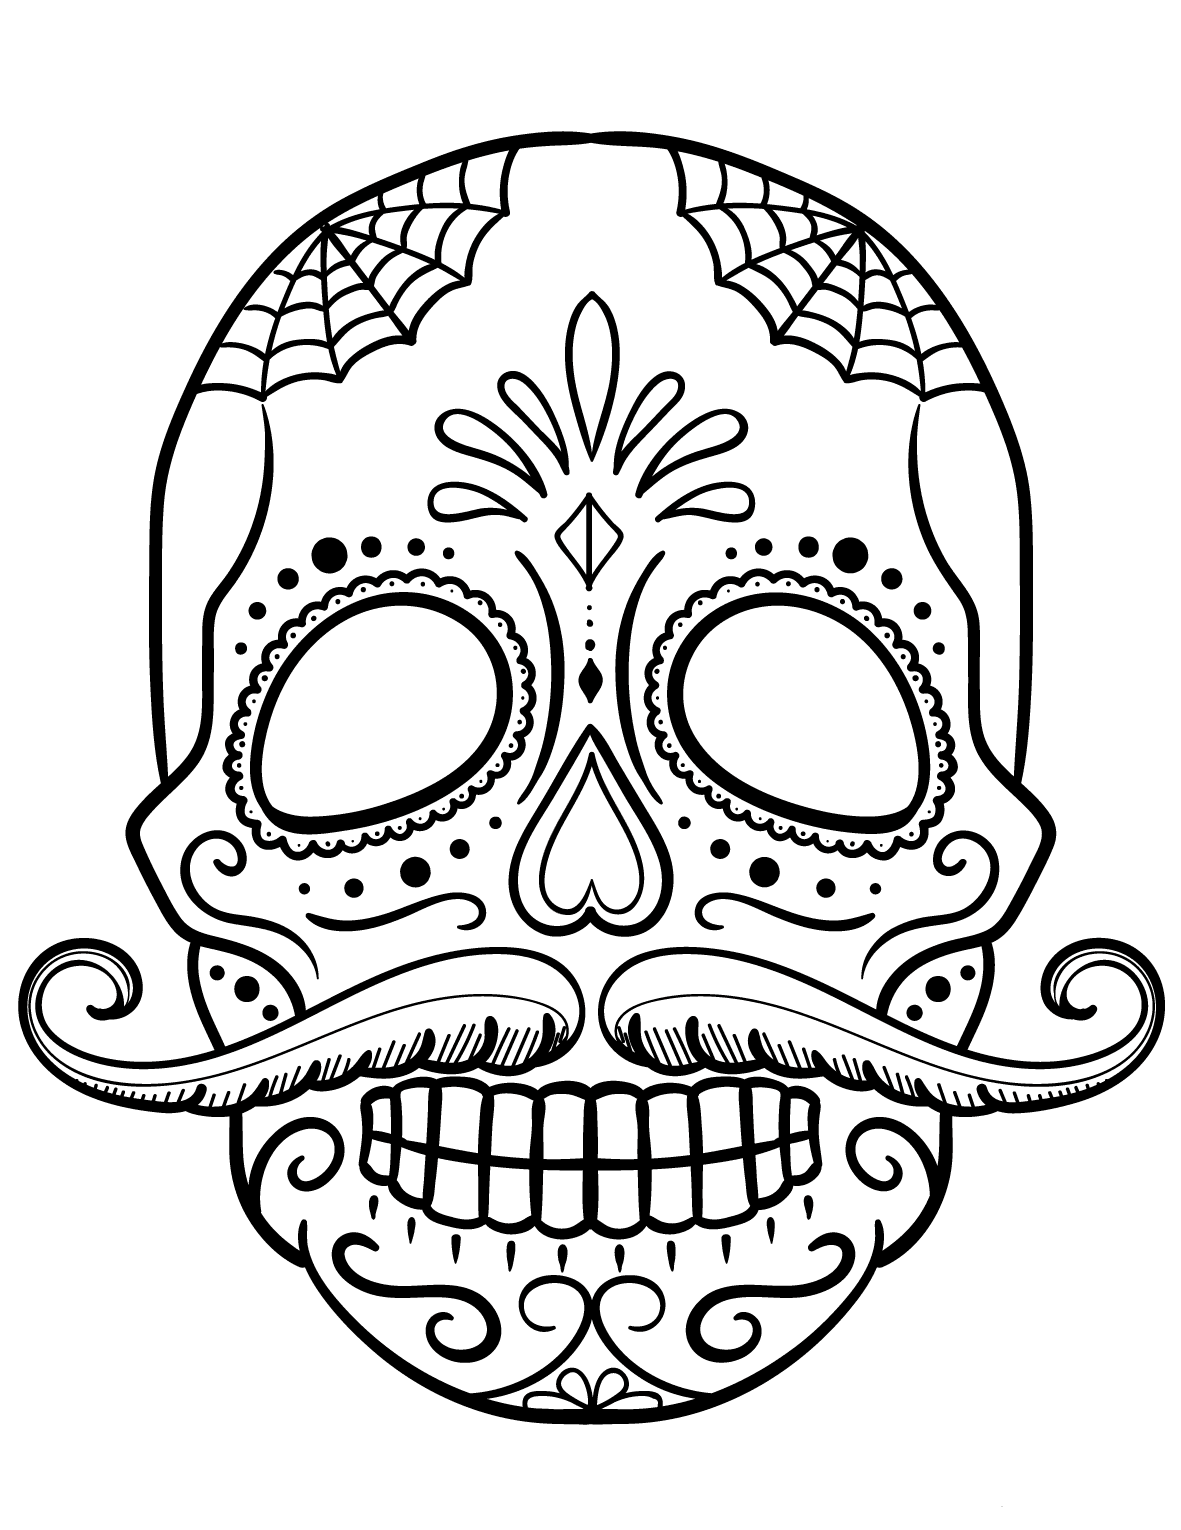 skull coloring book coloring pages skull free printable coloring pages skull book coloring